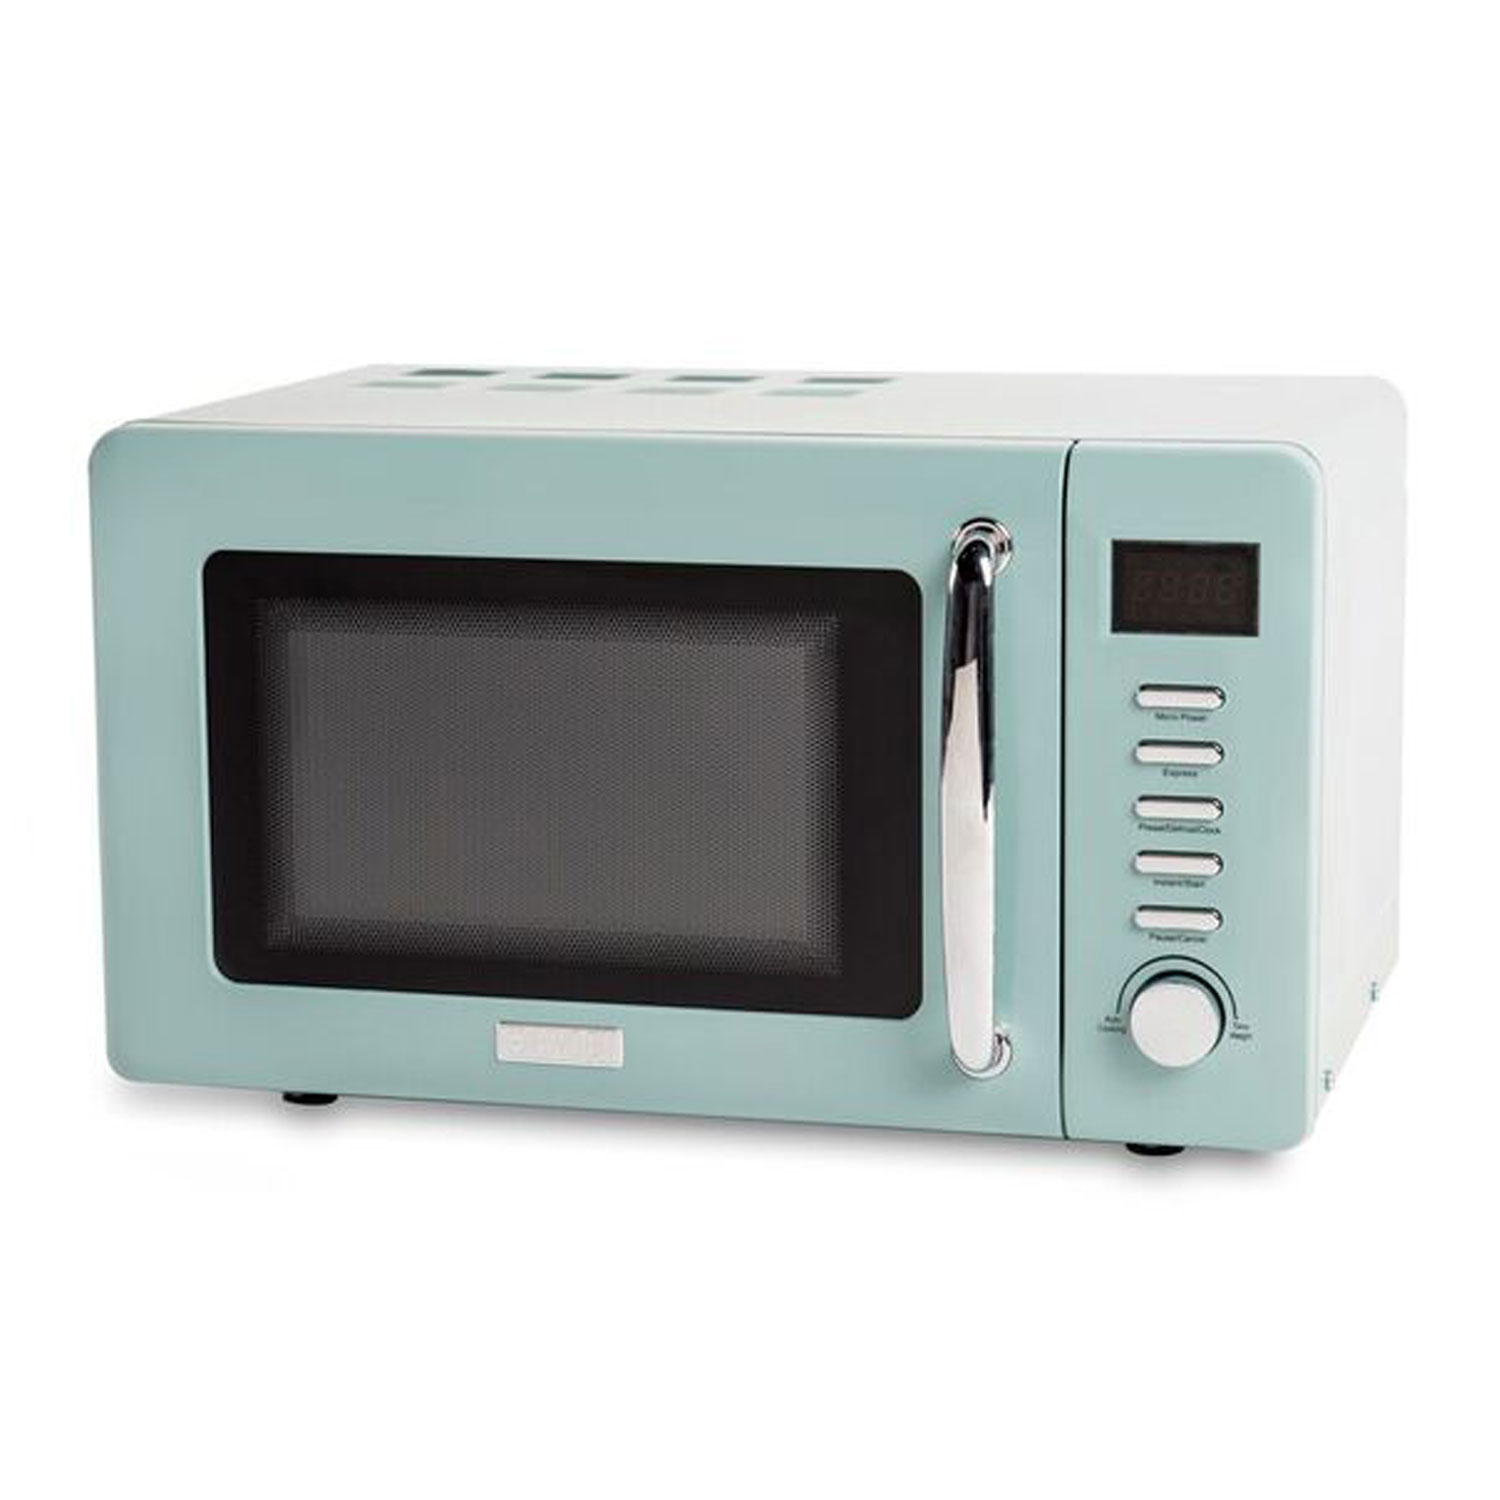 Image of Haden Cotswold Sage Microwave, Mint